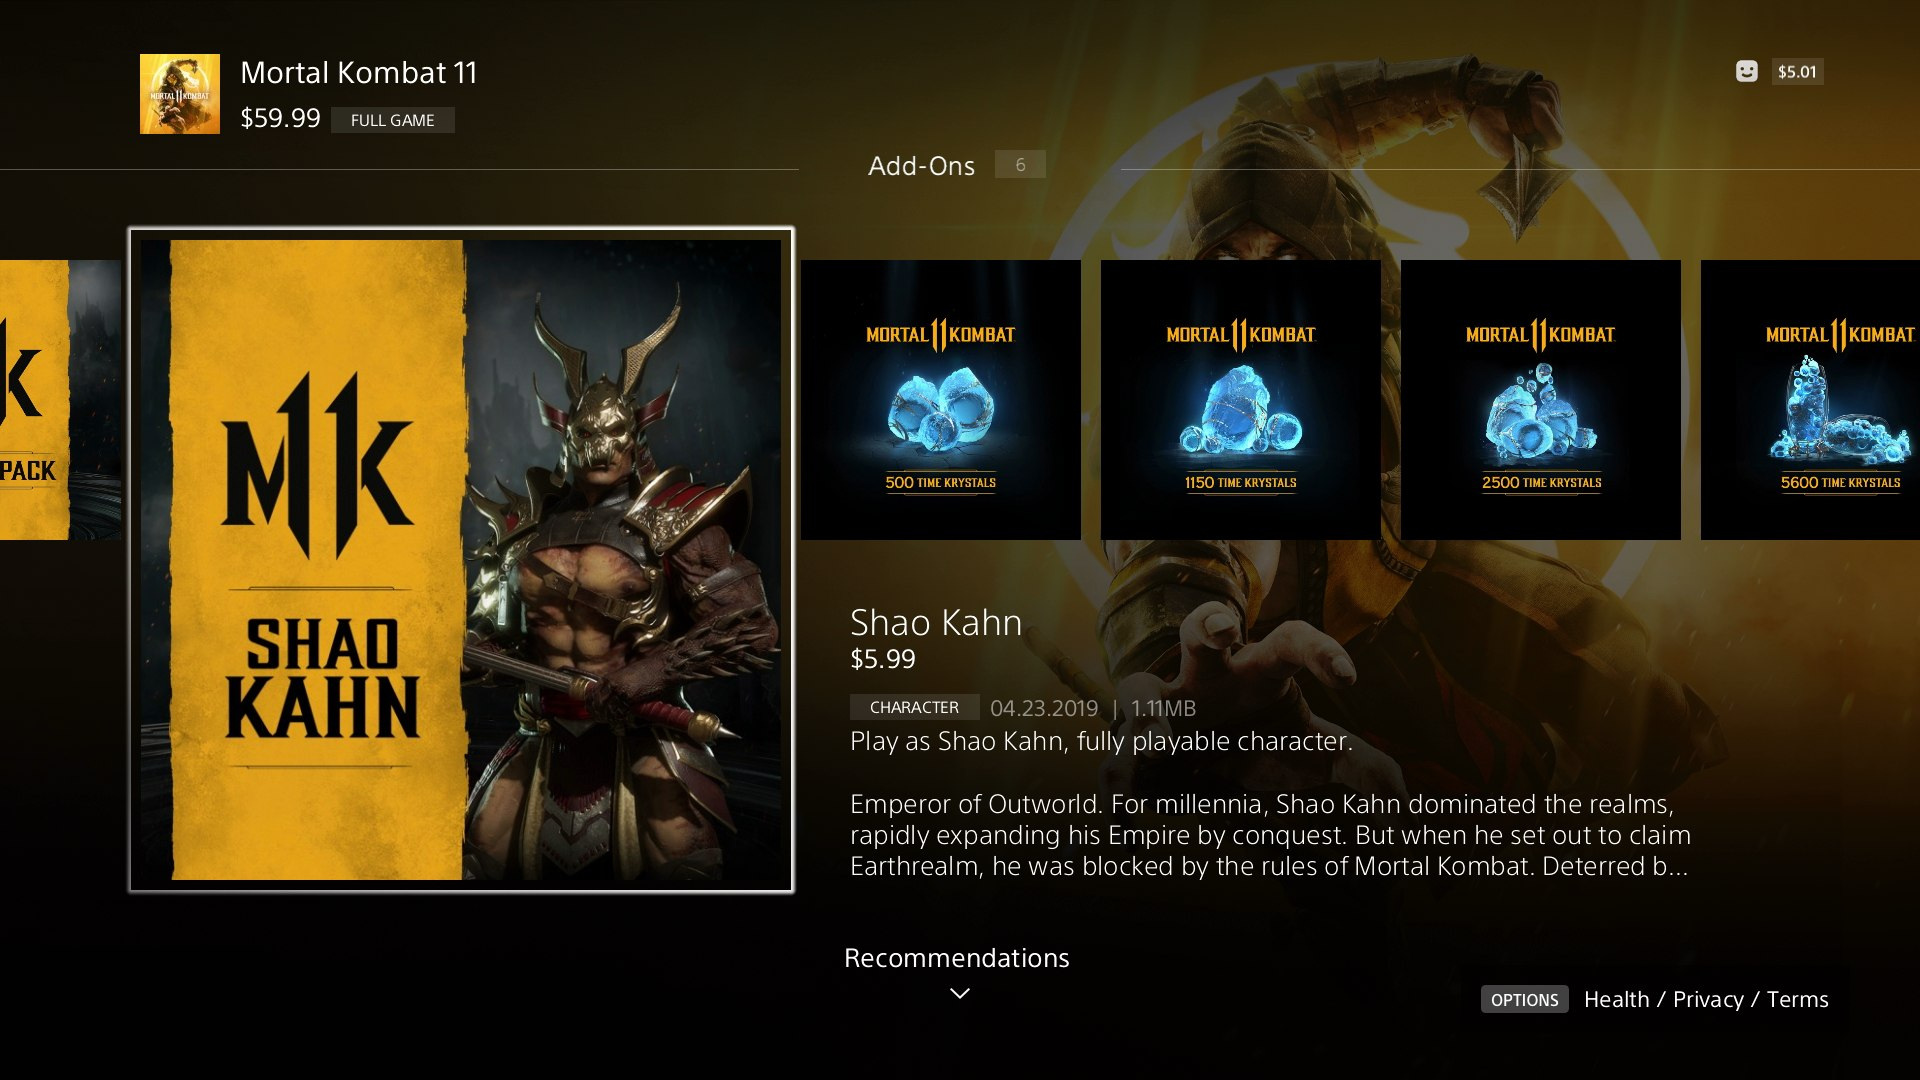 How To Unlock Shao Kahn In Mortal Kombat 11 Usgamer